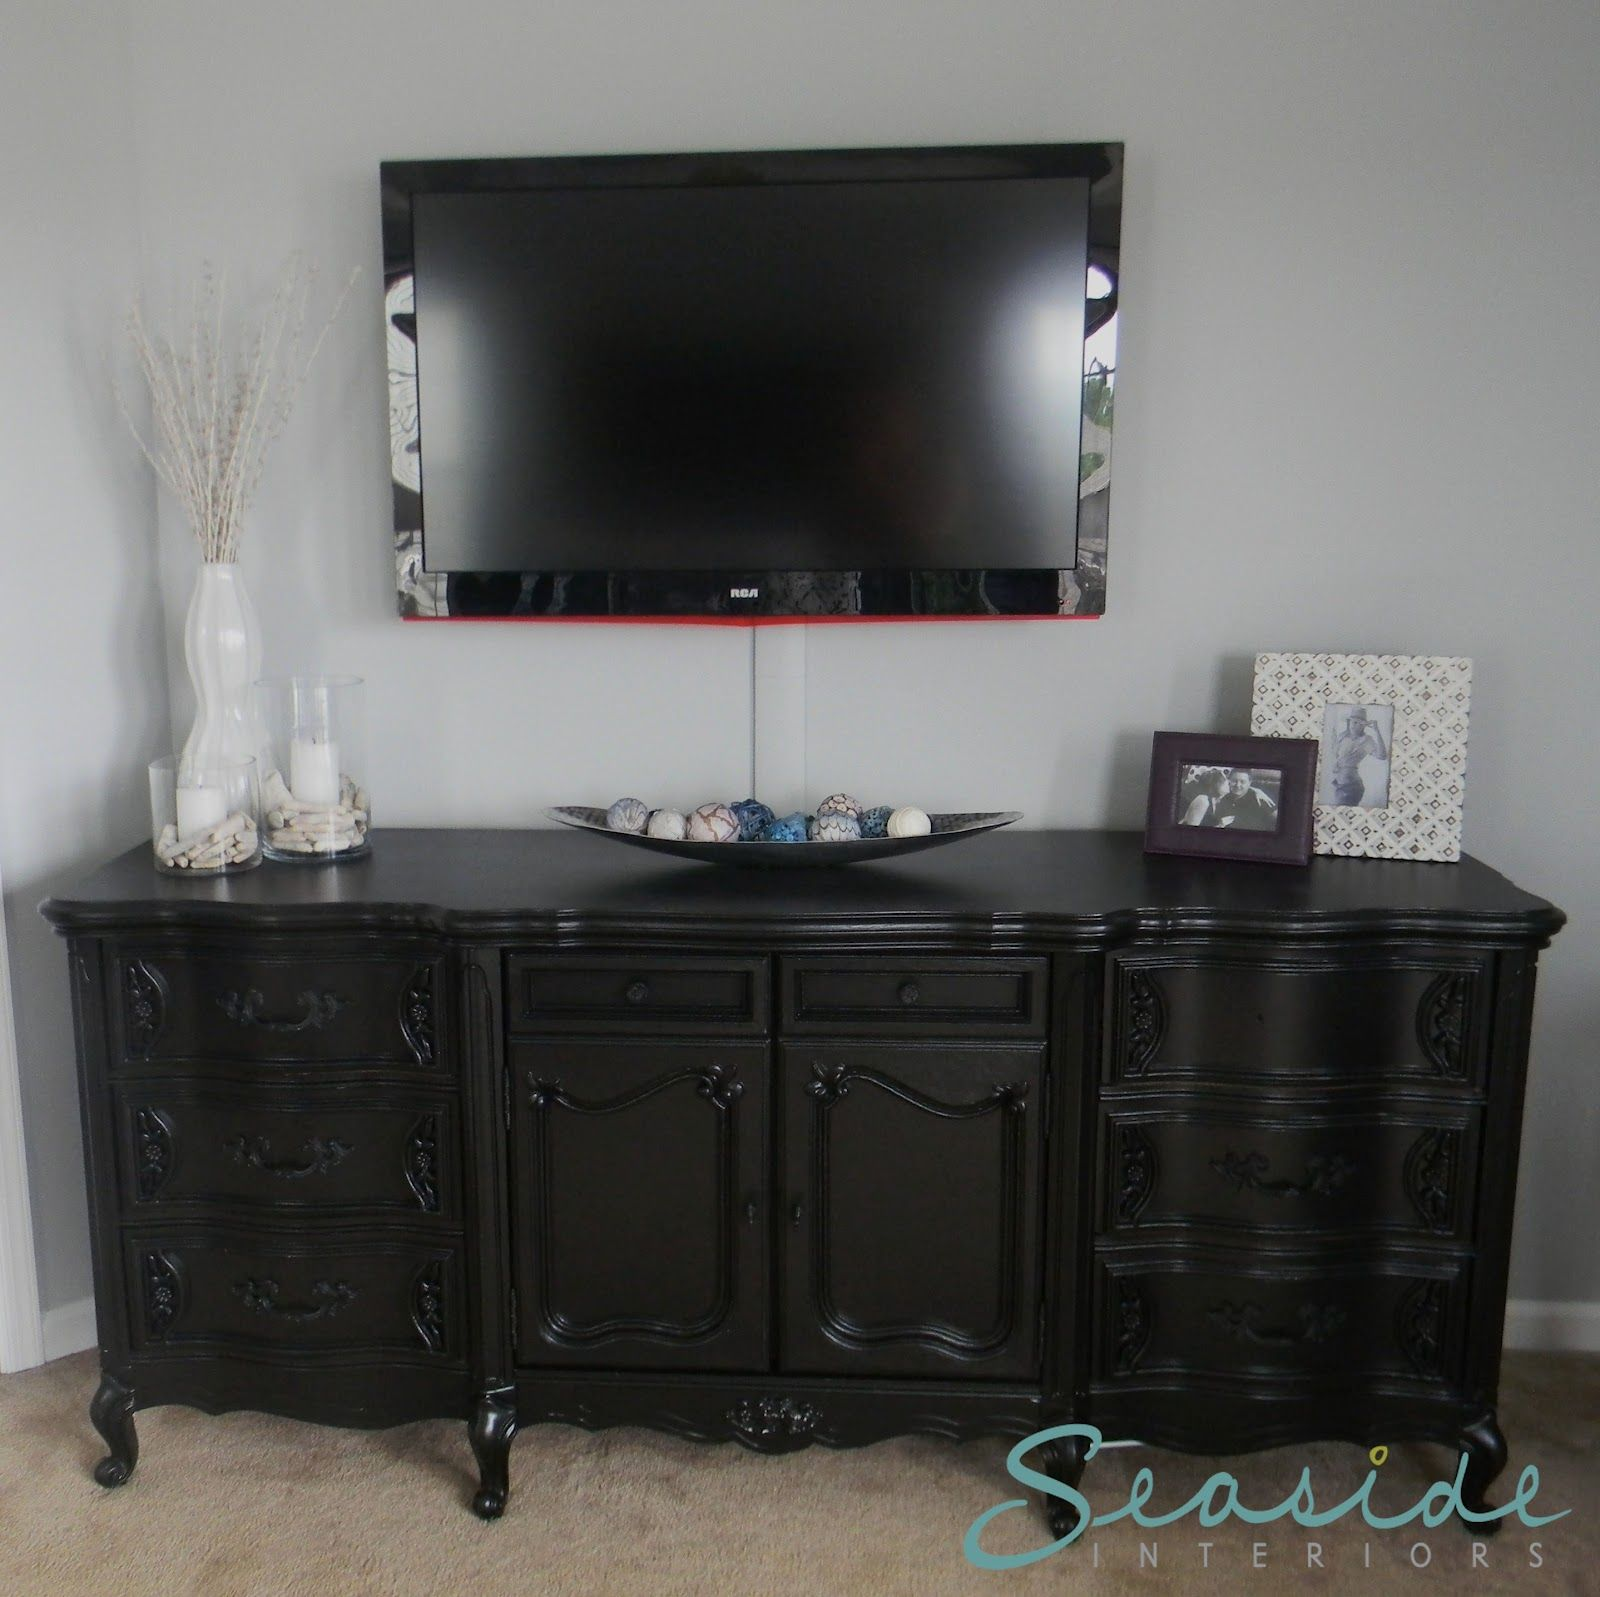 tv mounted above dresser | Home Sweet: Home | Pinterest ...